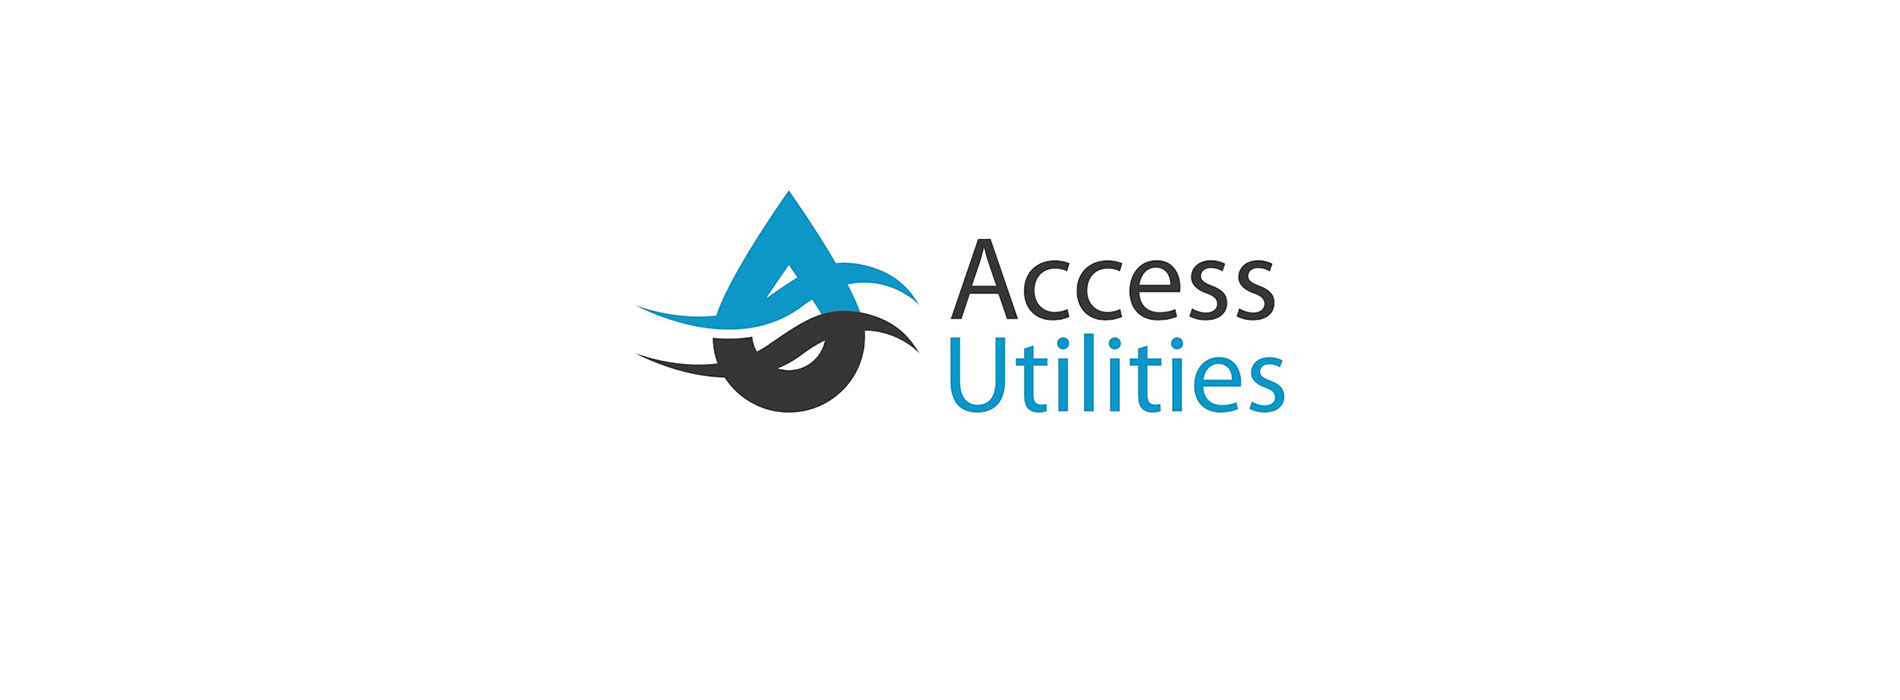 Access Utilities Header, News